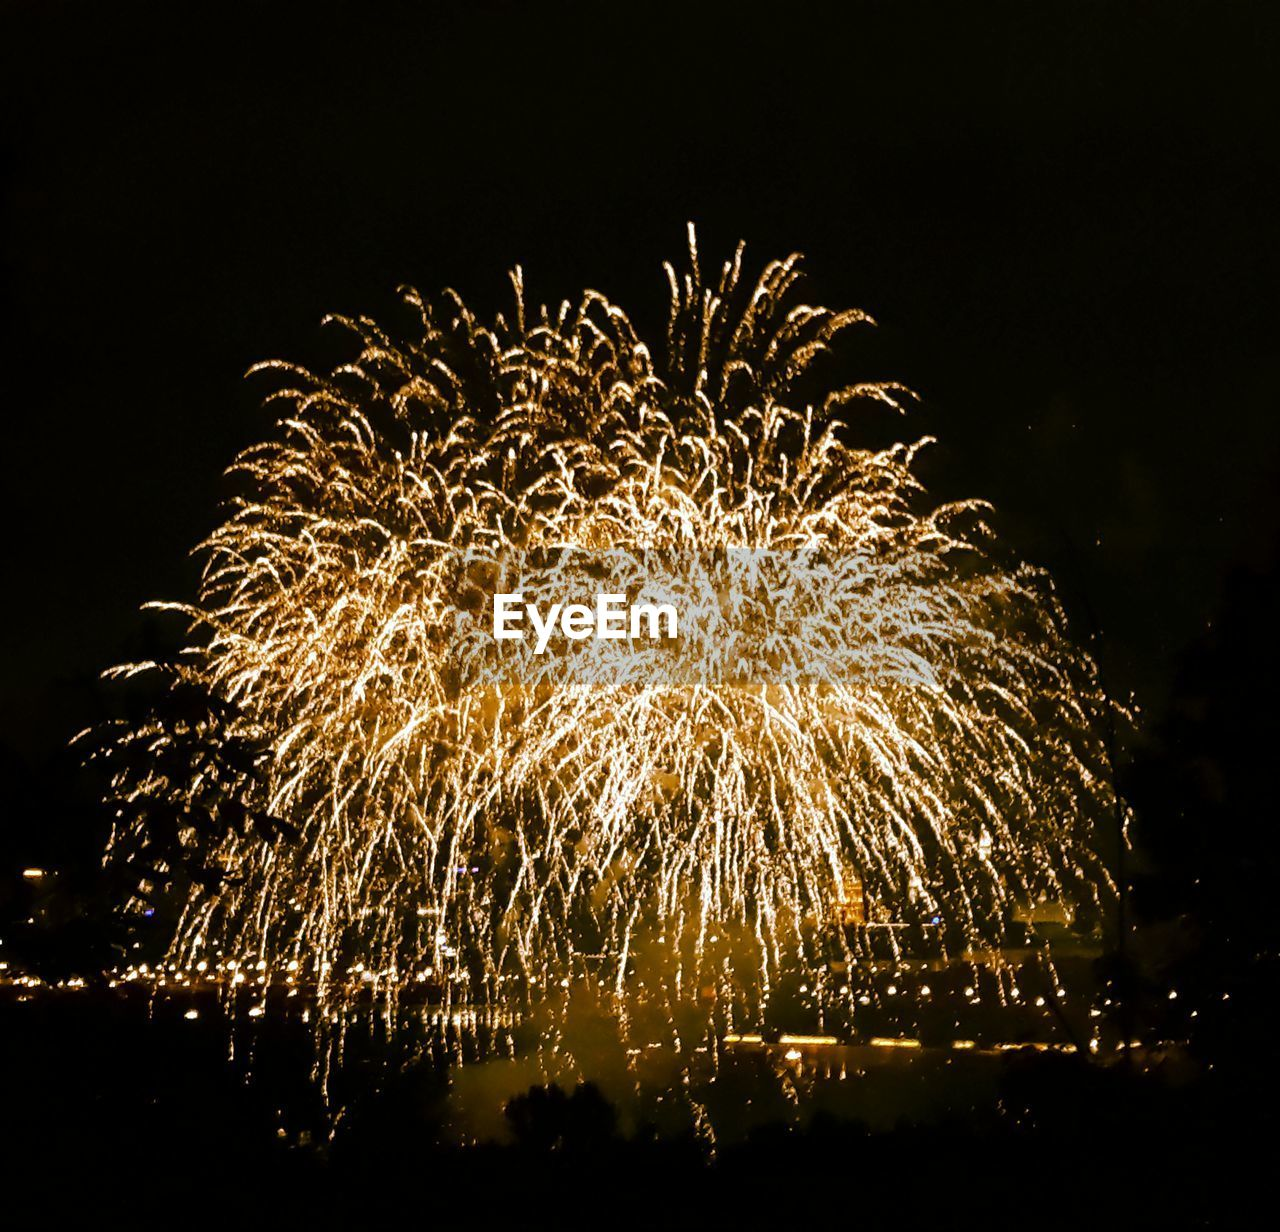 night, firework display, firework - man made object, long exposure, exploding, celebration, low angle view, arts culture and entertainment, illuminated, sparks, glowing, motion, event, blurred motion, no people, sky, outdoors, firework, multi colored, clear sky